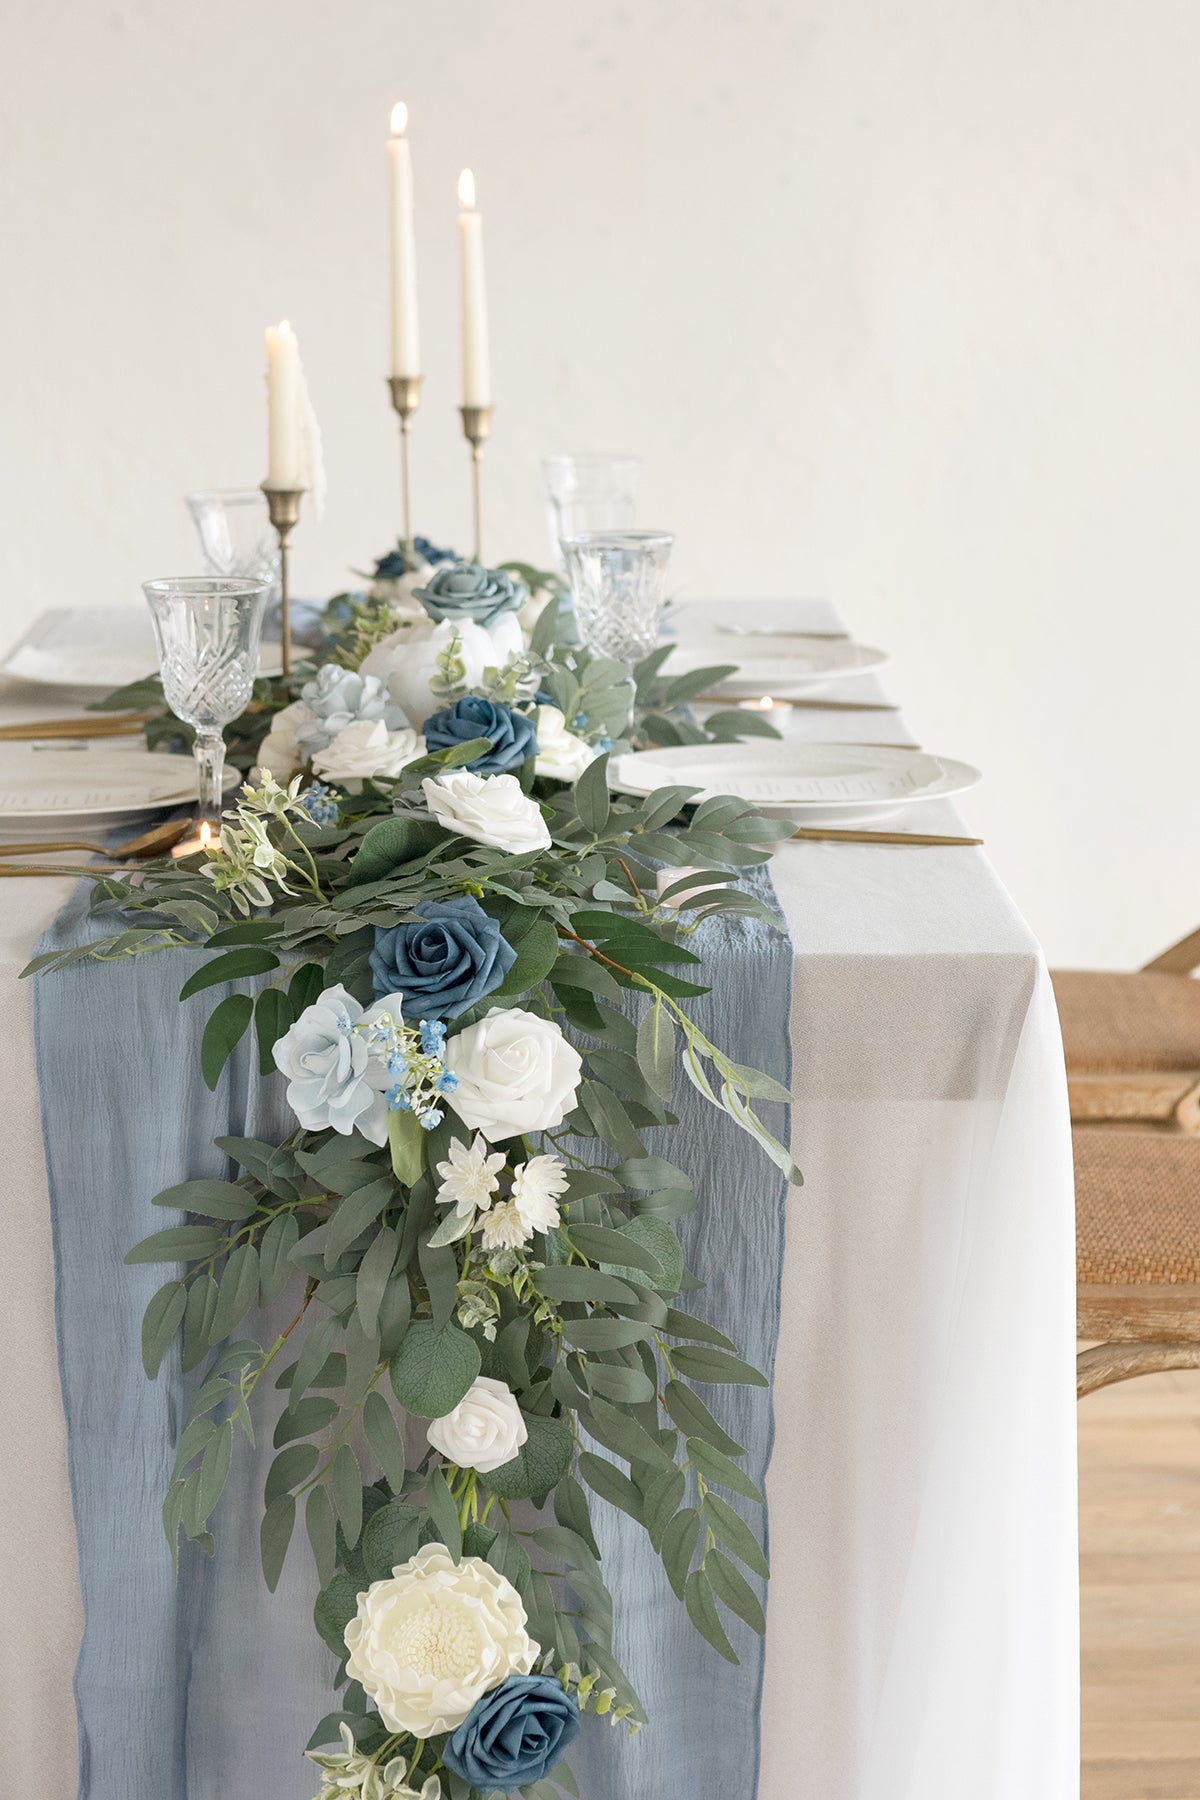 6ft Eucalyptus Flower Garland - Dusty Blue